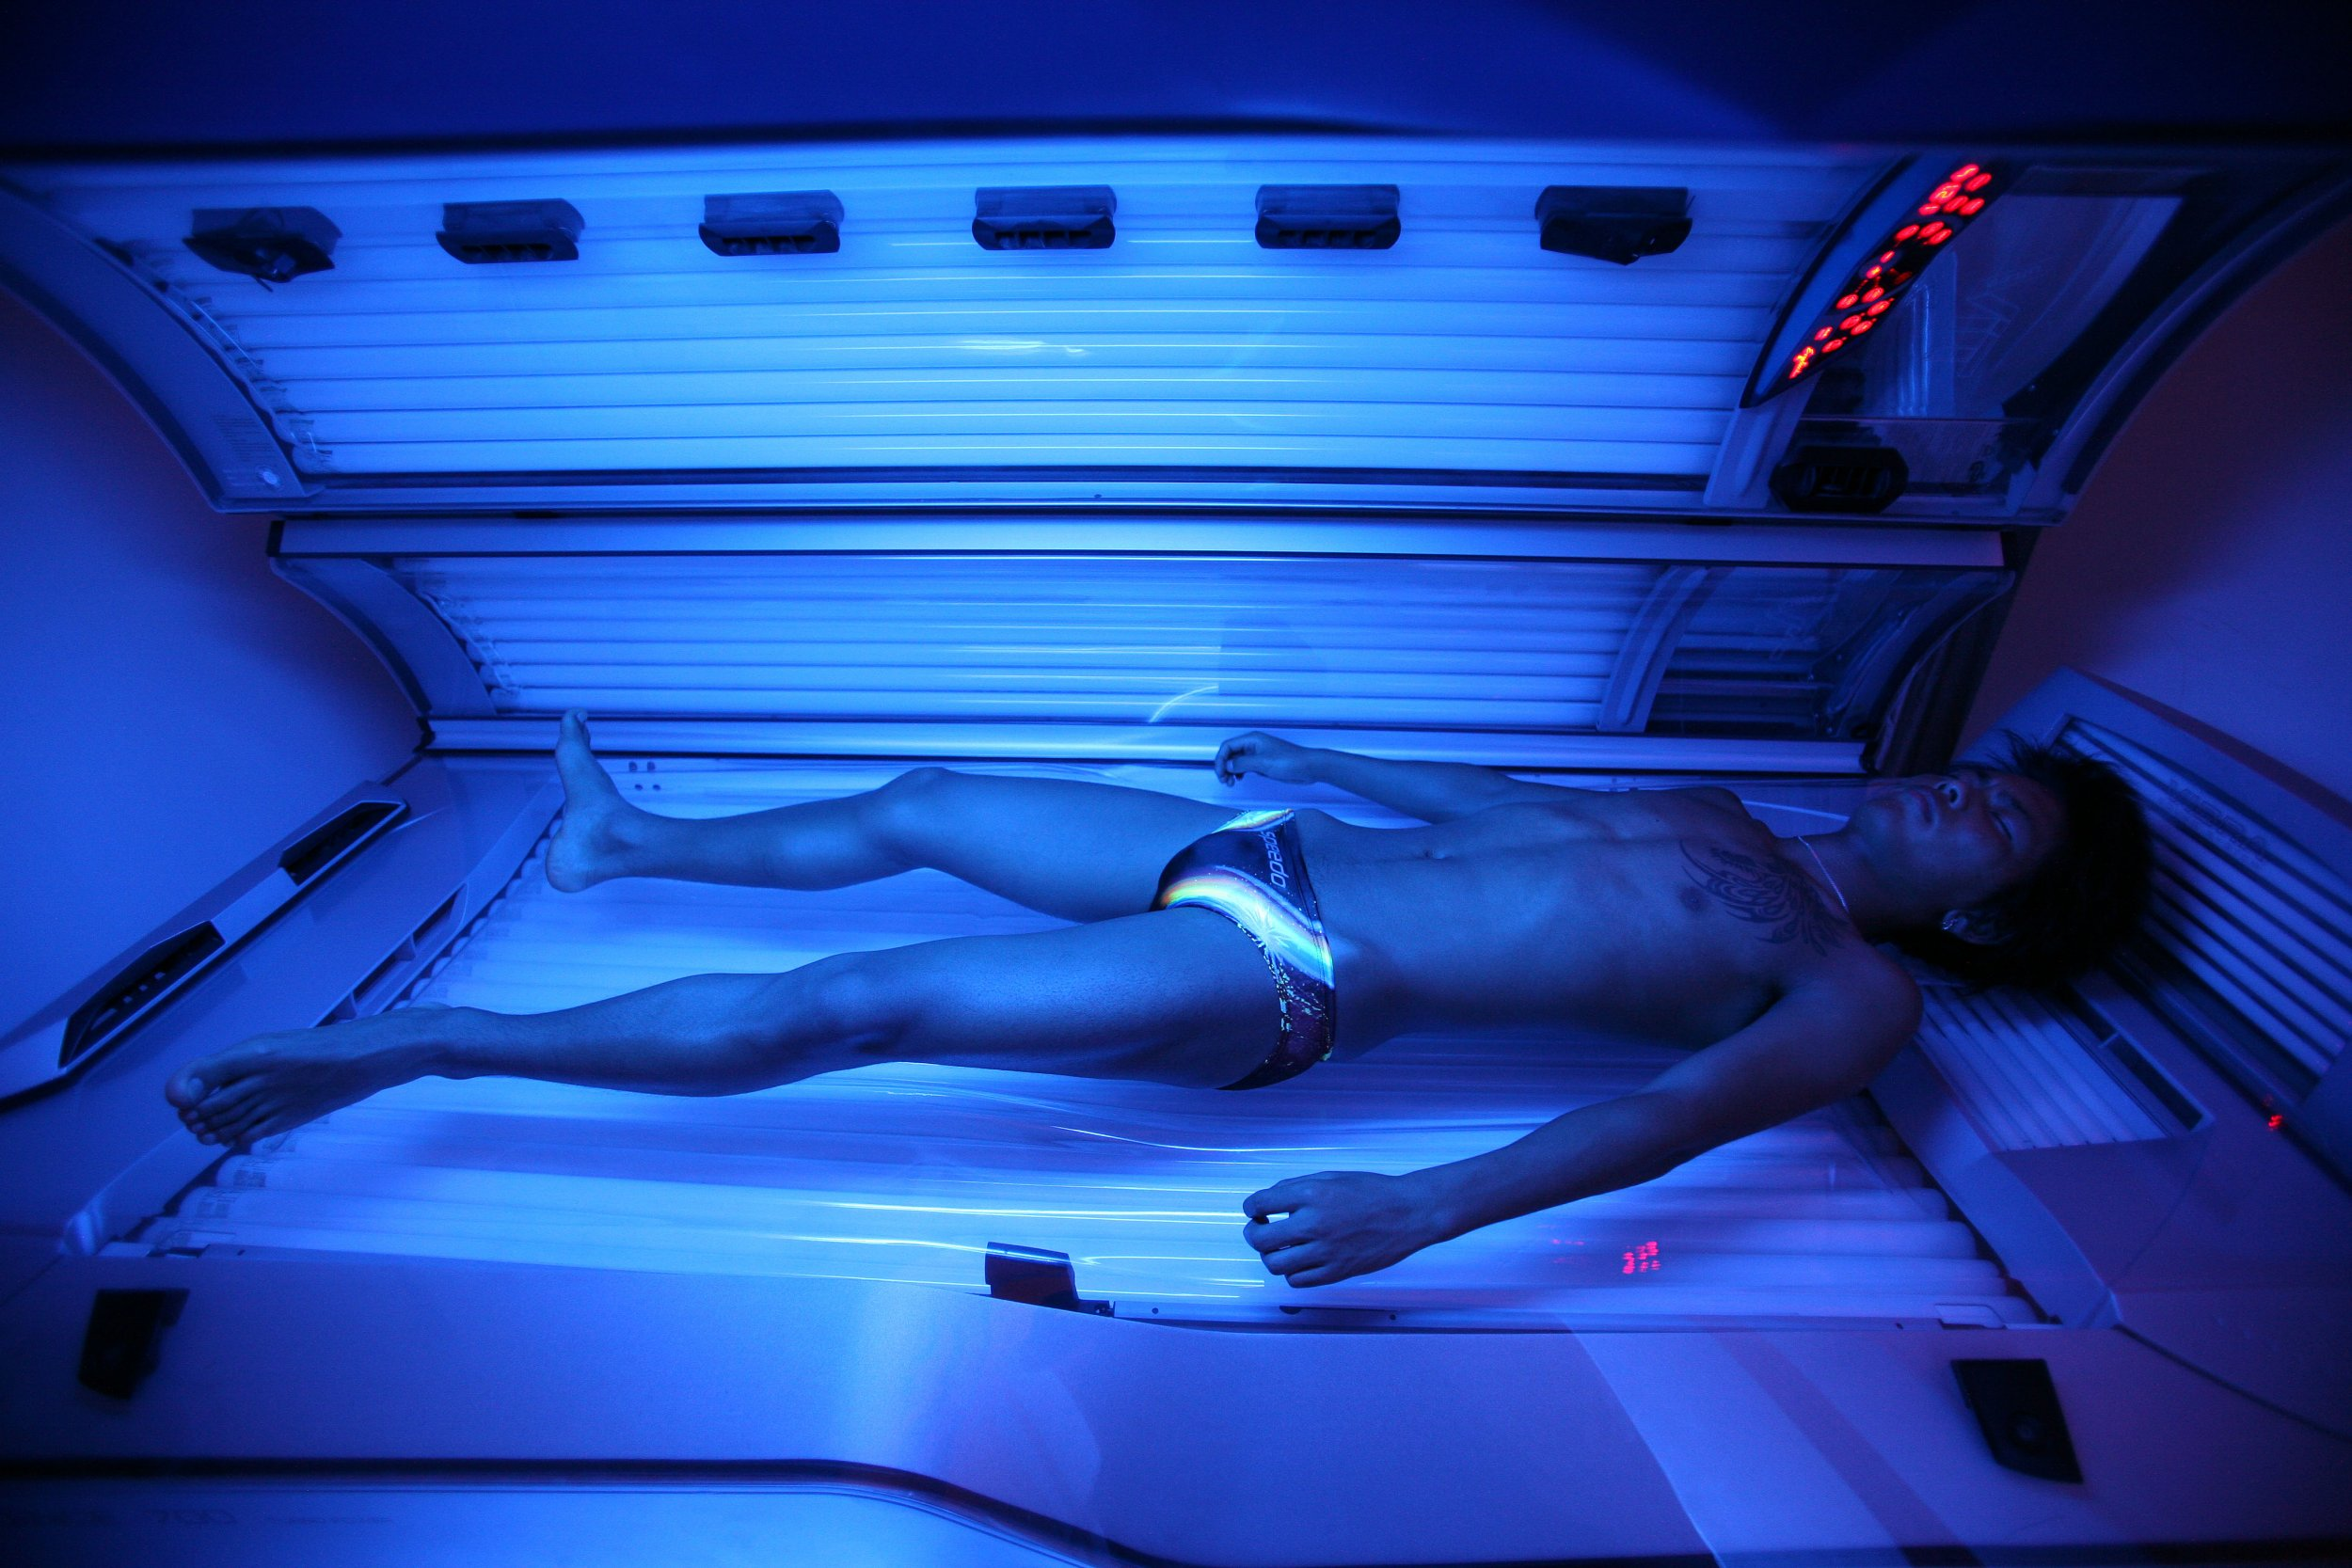 Single session tanning